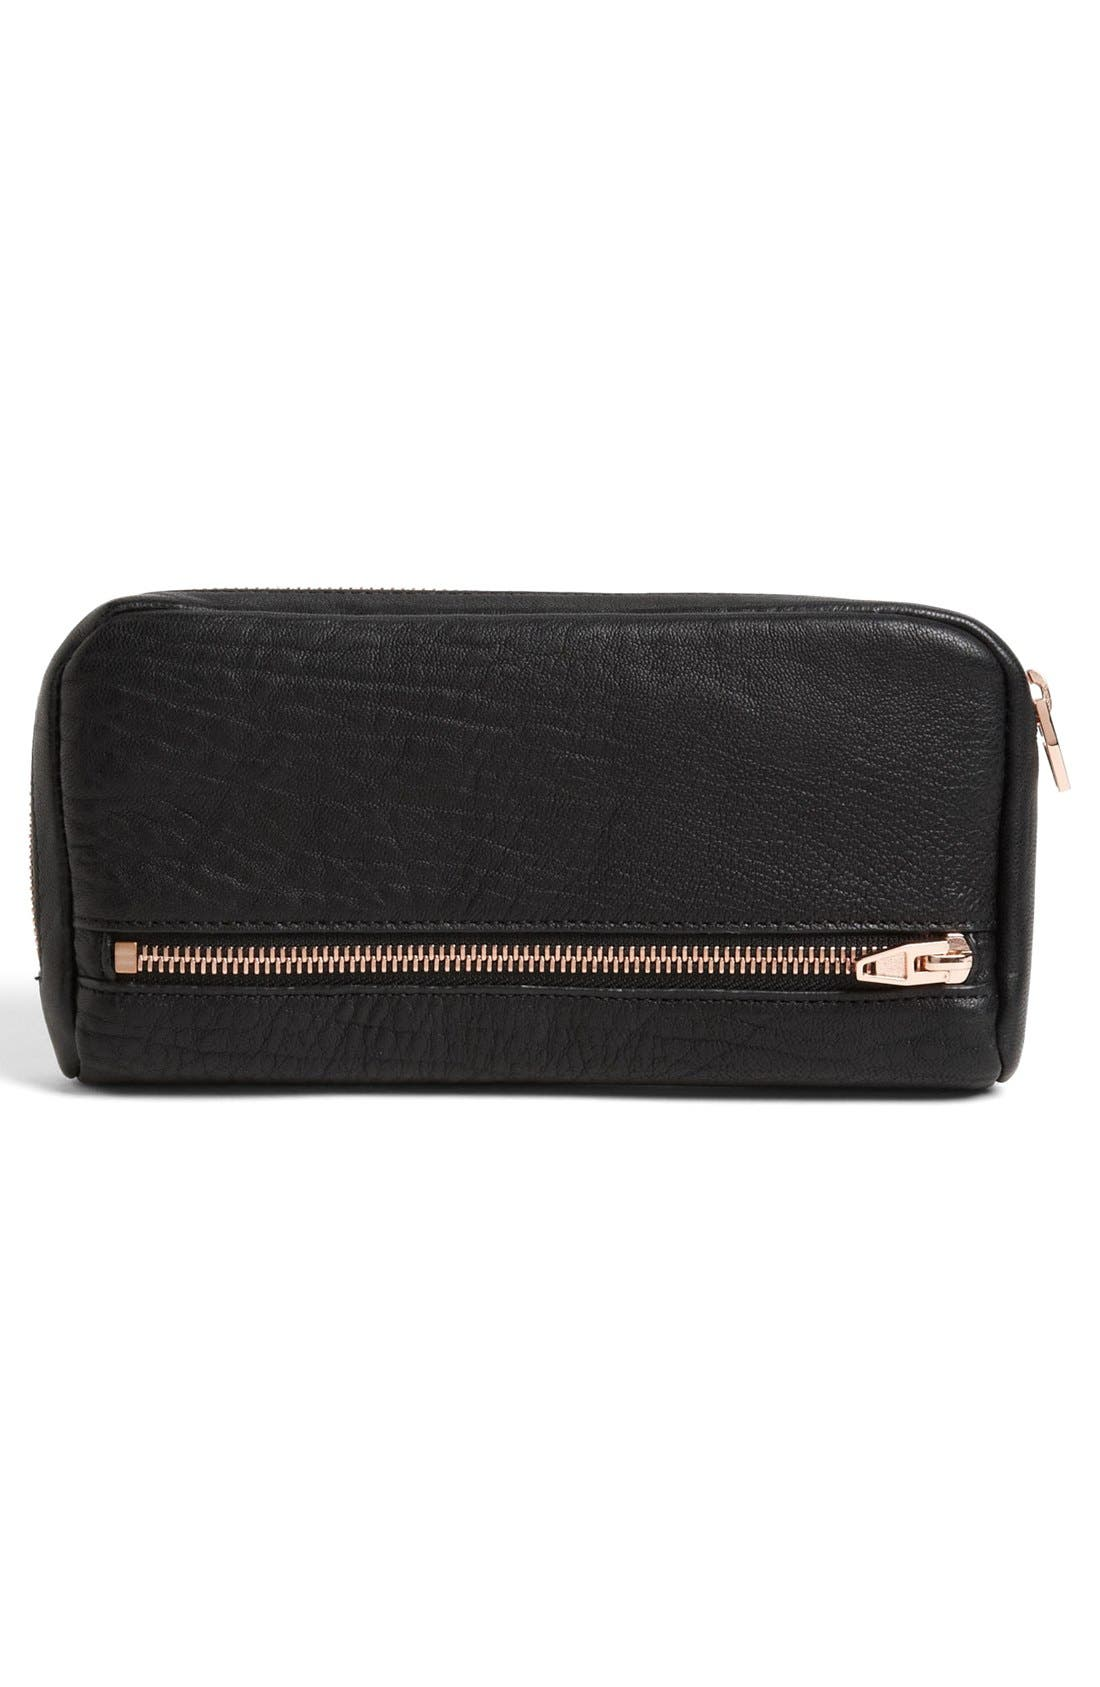 Alternate Image 4  - Alexander Wang 'Fumo' Zip Top Leather Pouch Wallet